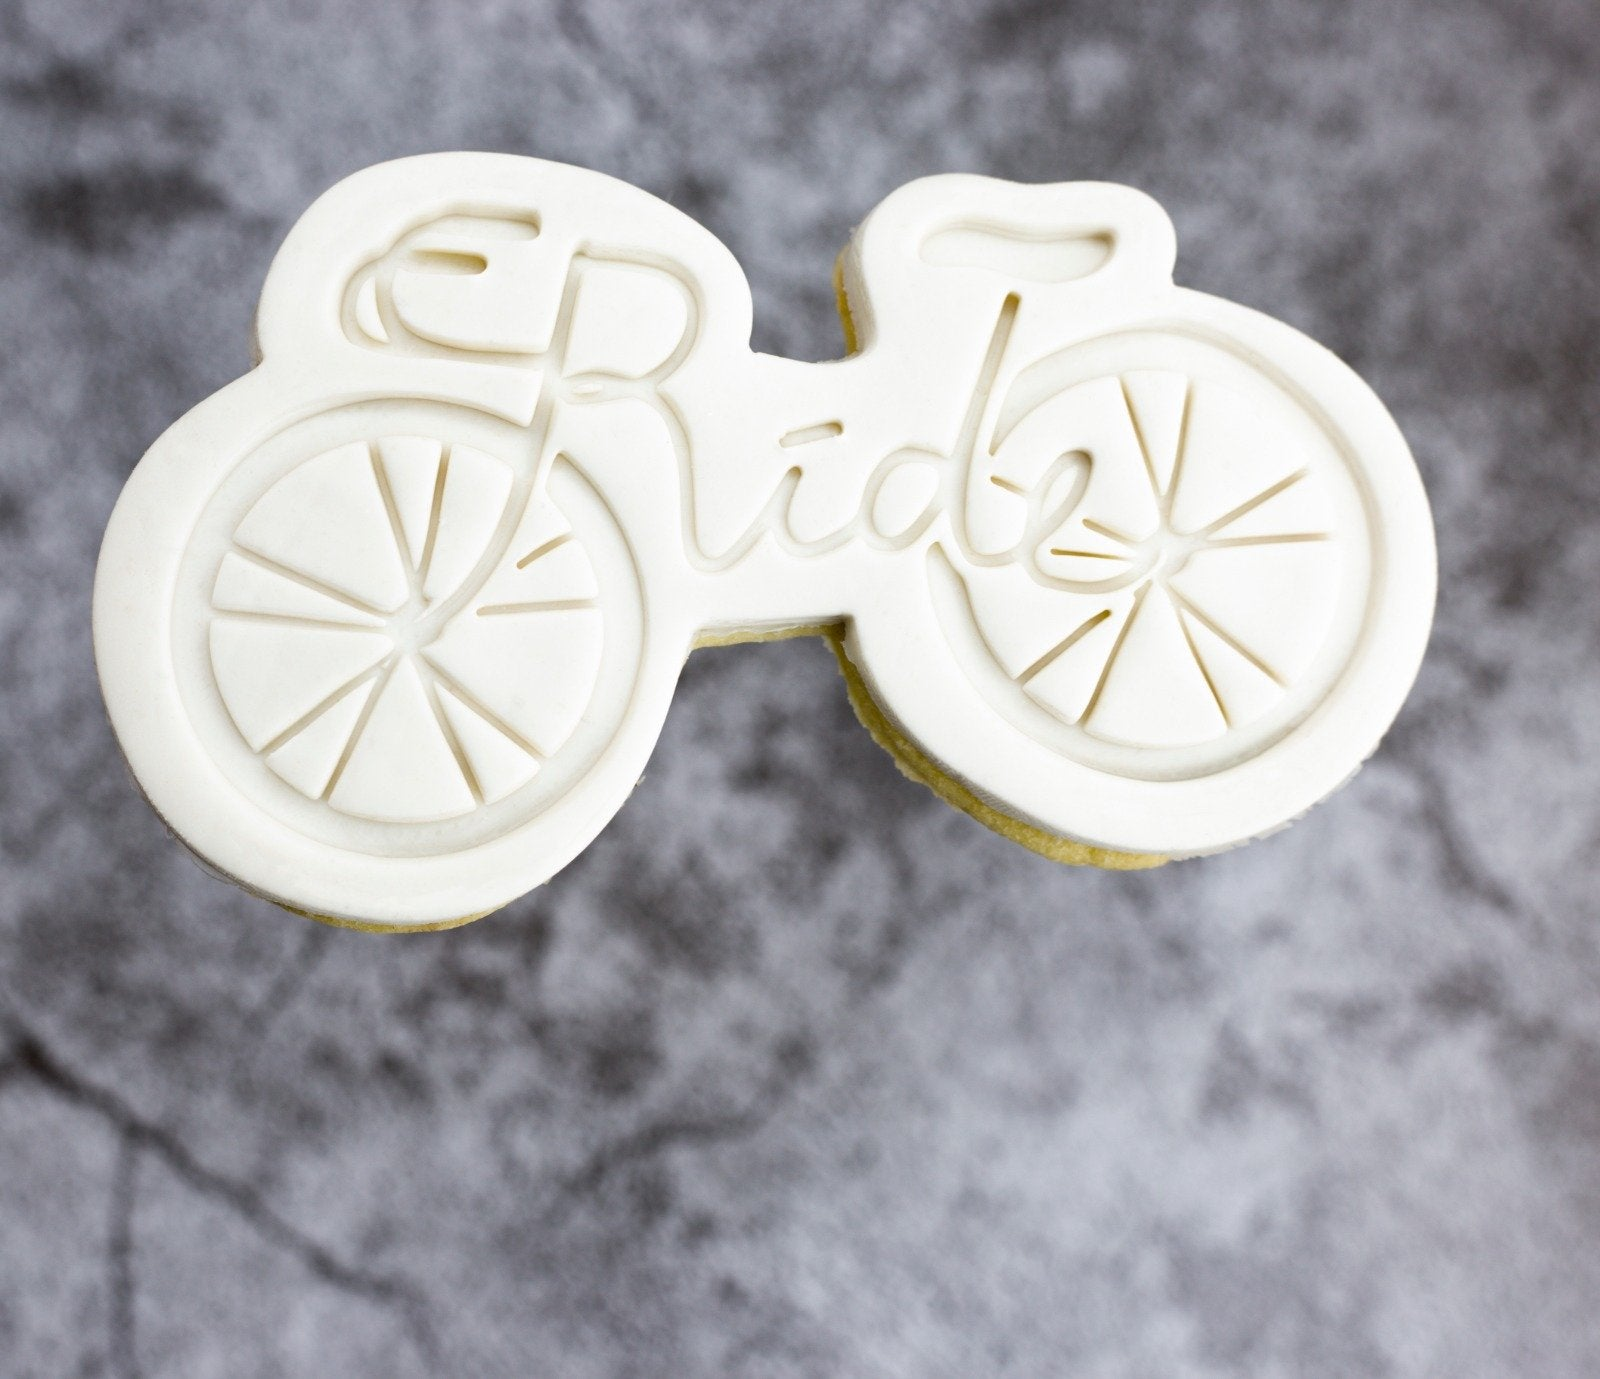 Bike Ride Cookie Cutter - Dolce3D